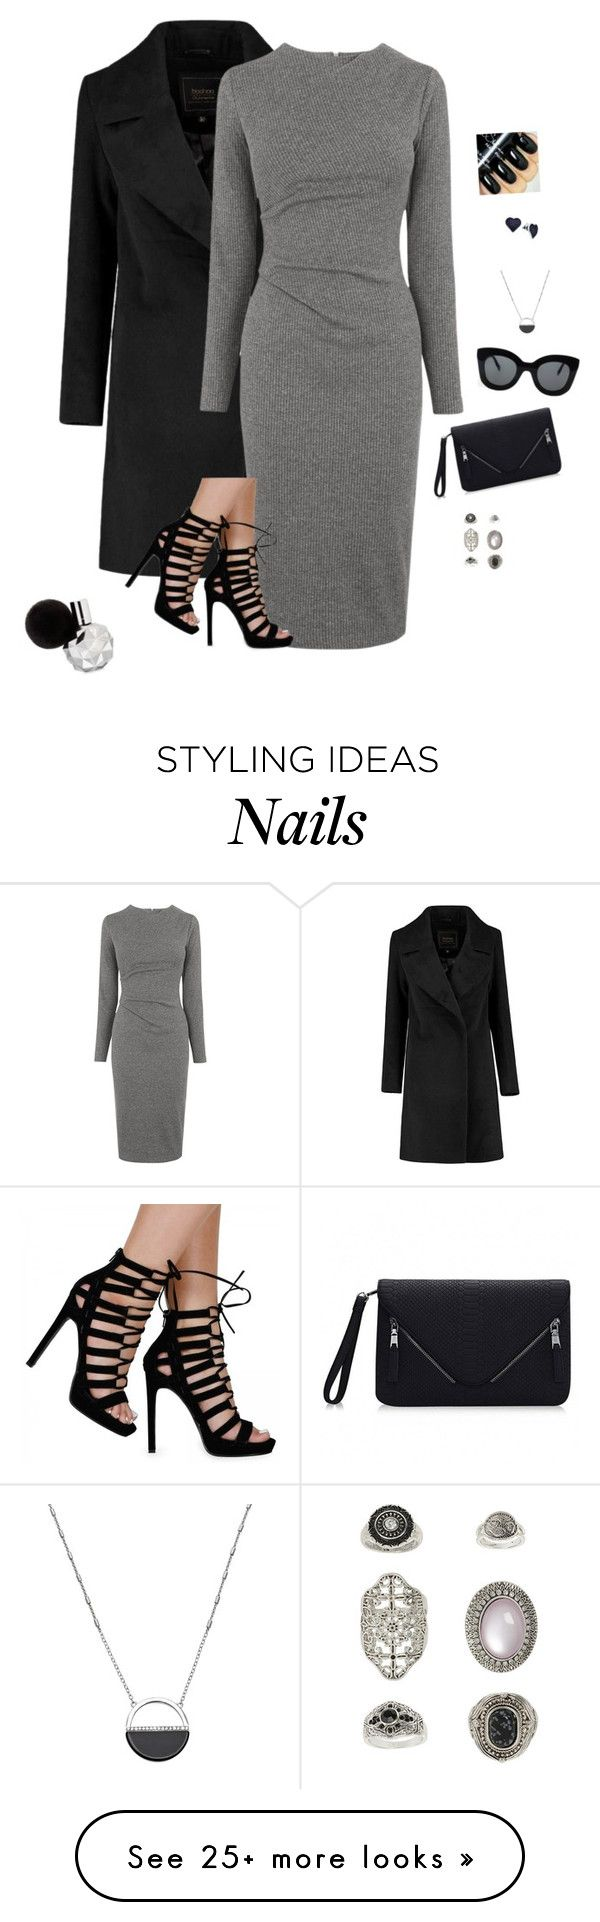 """""""High Fashion Woman"""" by hanakdudley on Polyvore featuring Whistles, CÉLINE, White House Black Market, Topshop, BillyTheTree, women's clothing, women, female, woman and misses"""